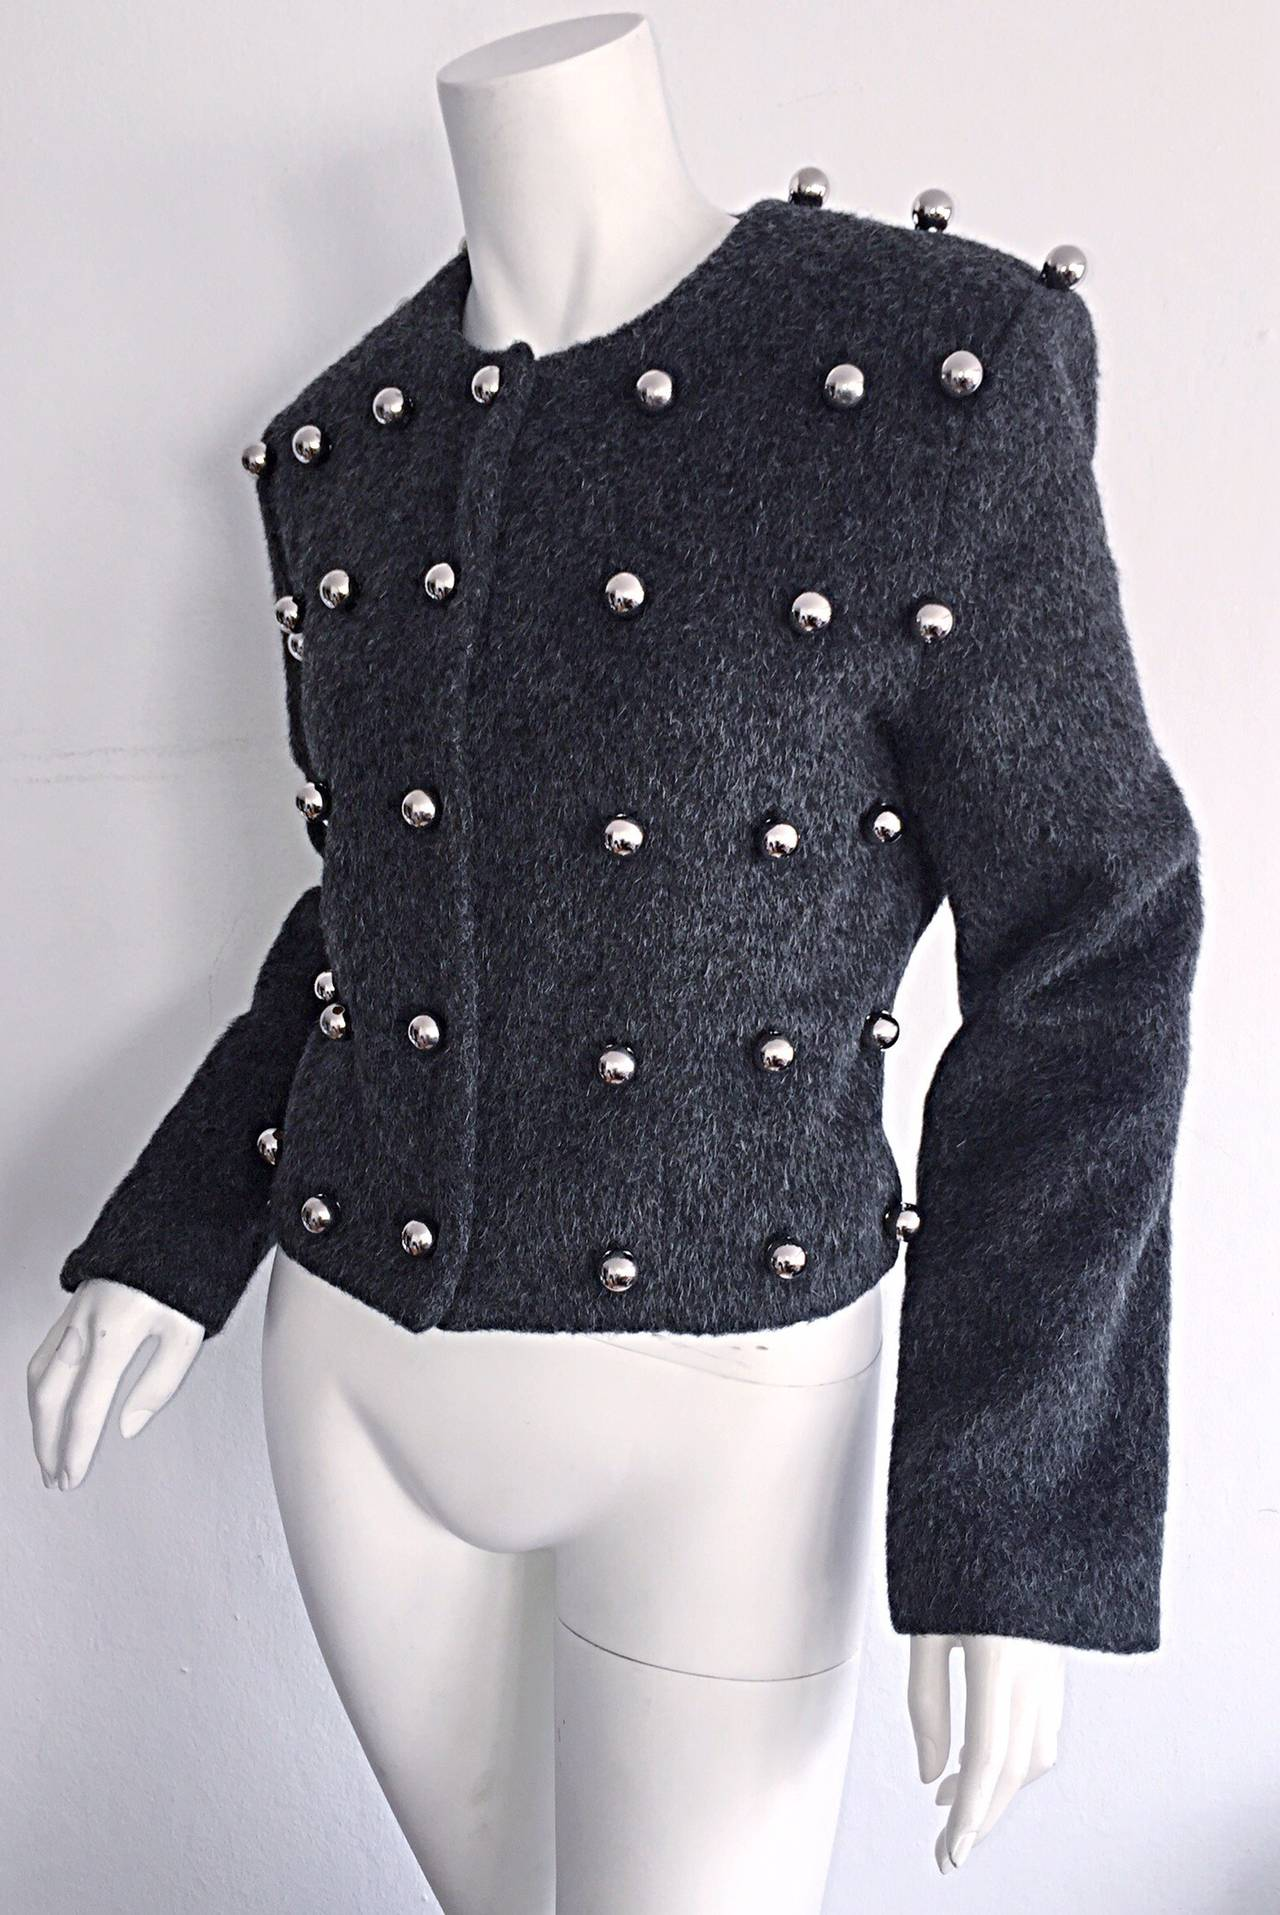 Vintage Patrick Kelly Charcoal Gray 3 - D Silver Ball Jacket For Sale 1